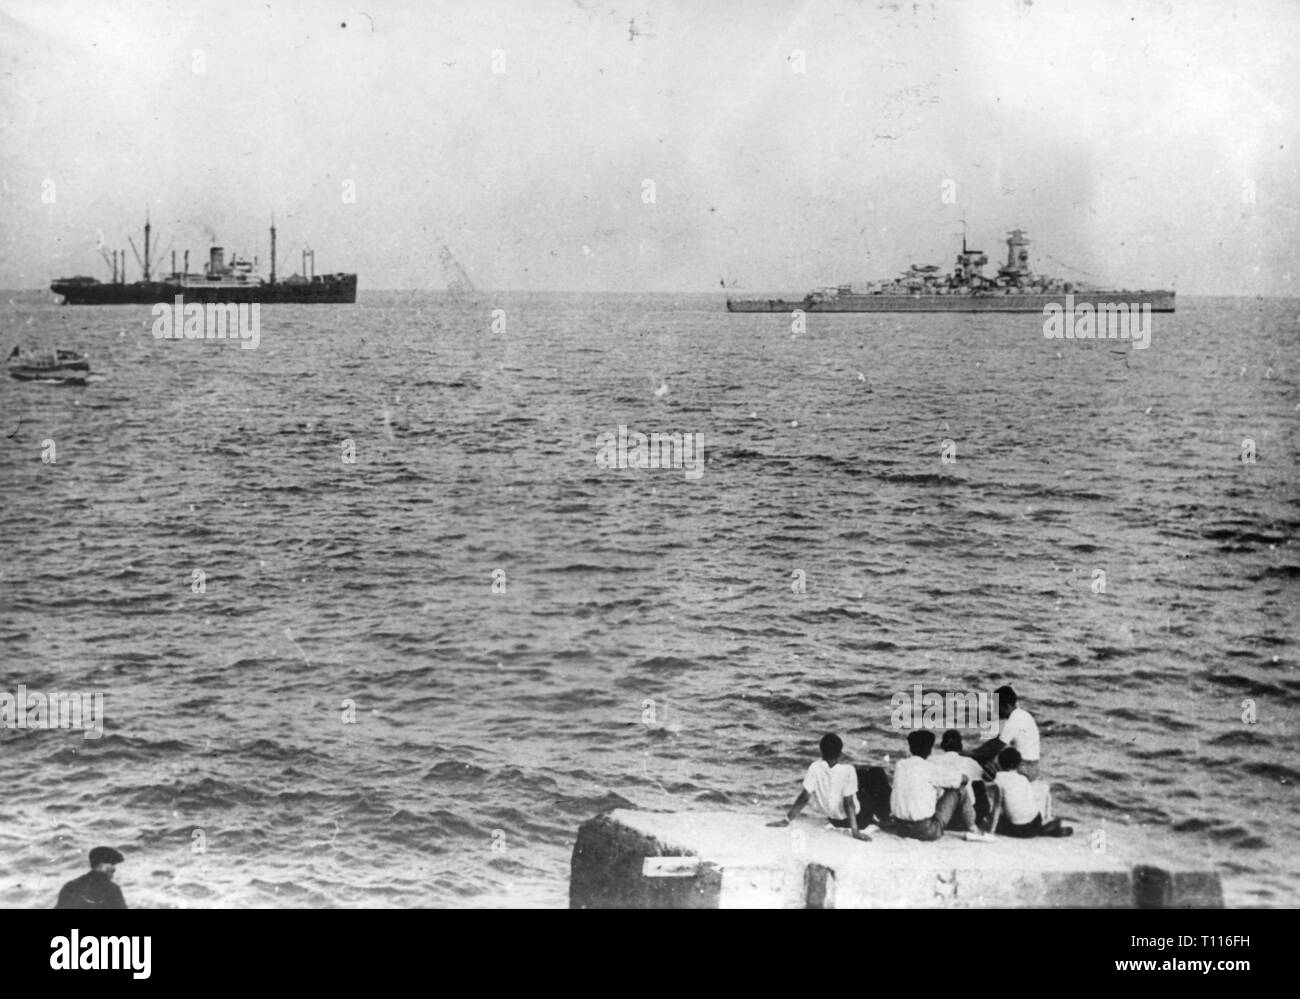 Spanish Civil War 1936 - 1939, of the German heavy cruiser 'Admiral Scheer' before the Spanish coast, Barcelona, August 1936, Additional-Rights-Clearance-Info-Not-Available - Stock Image